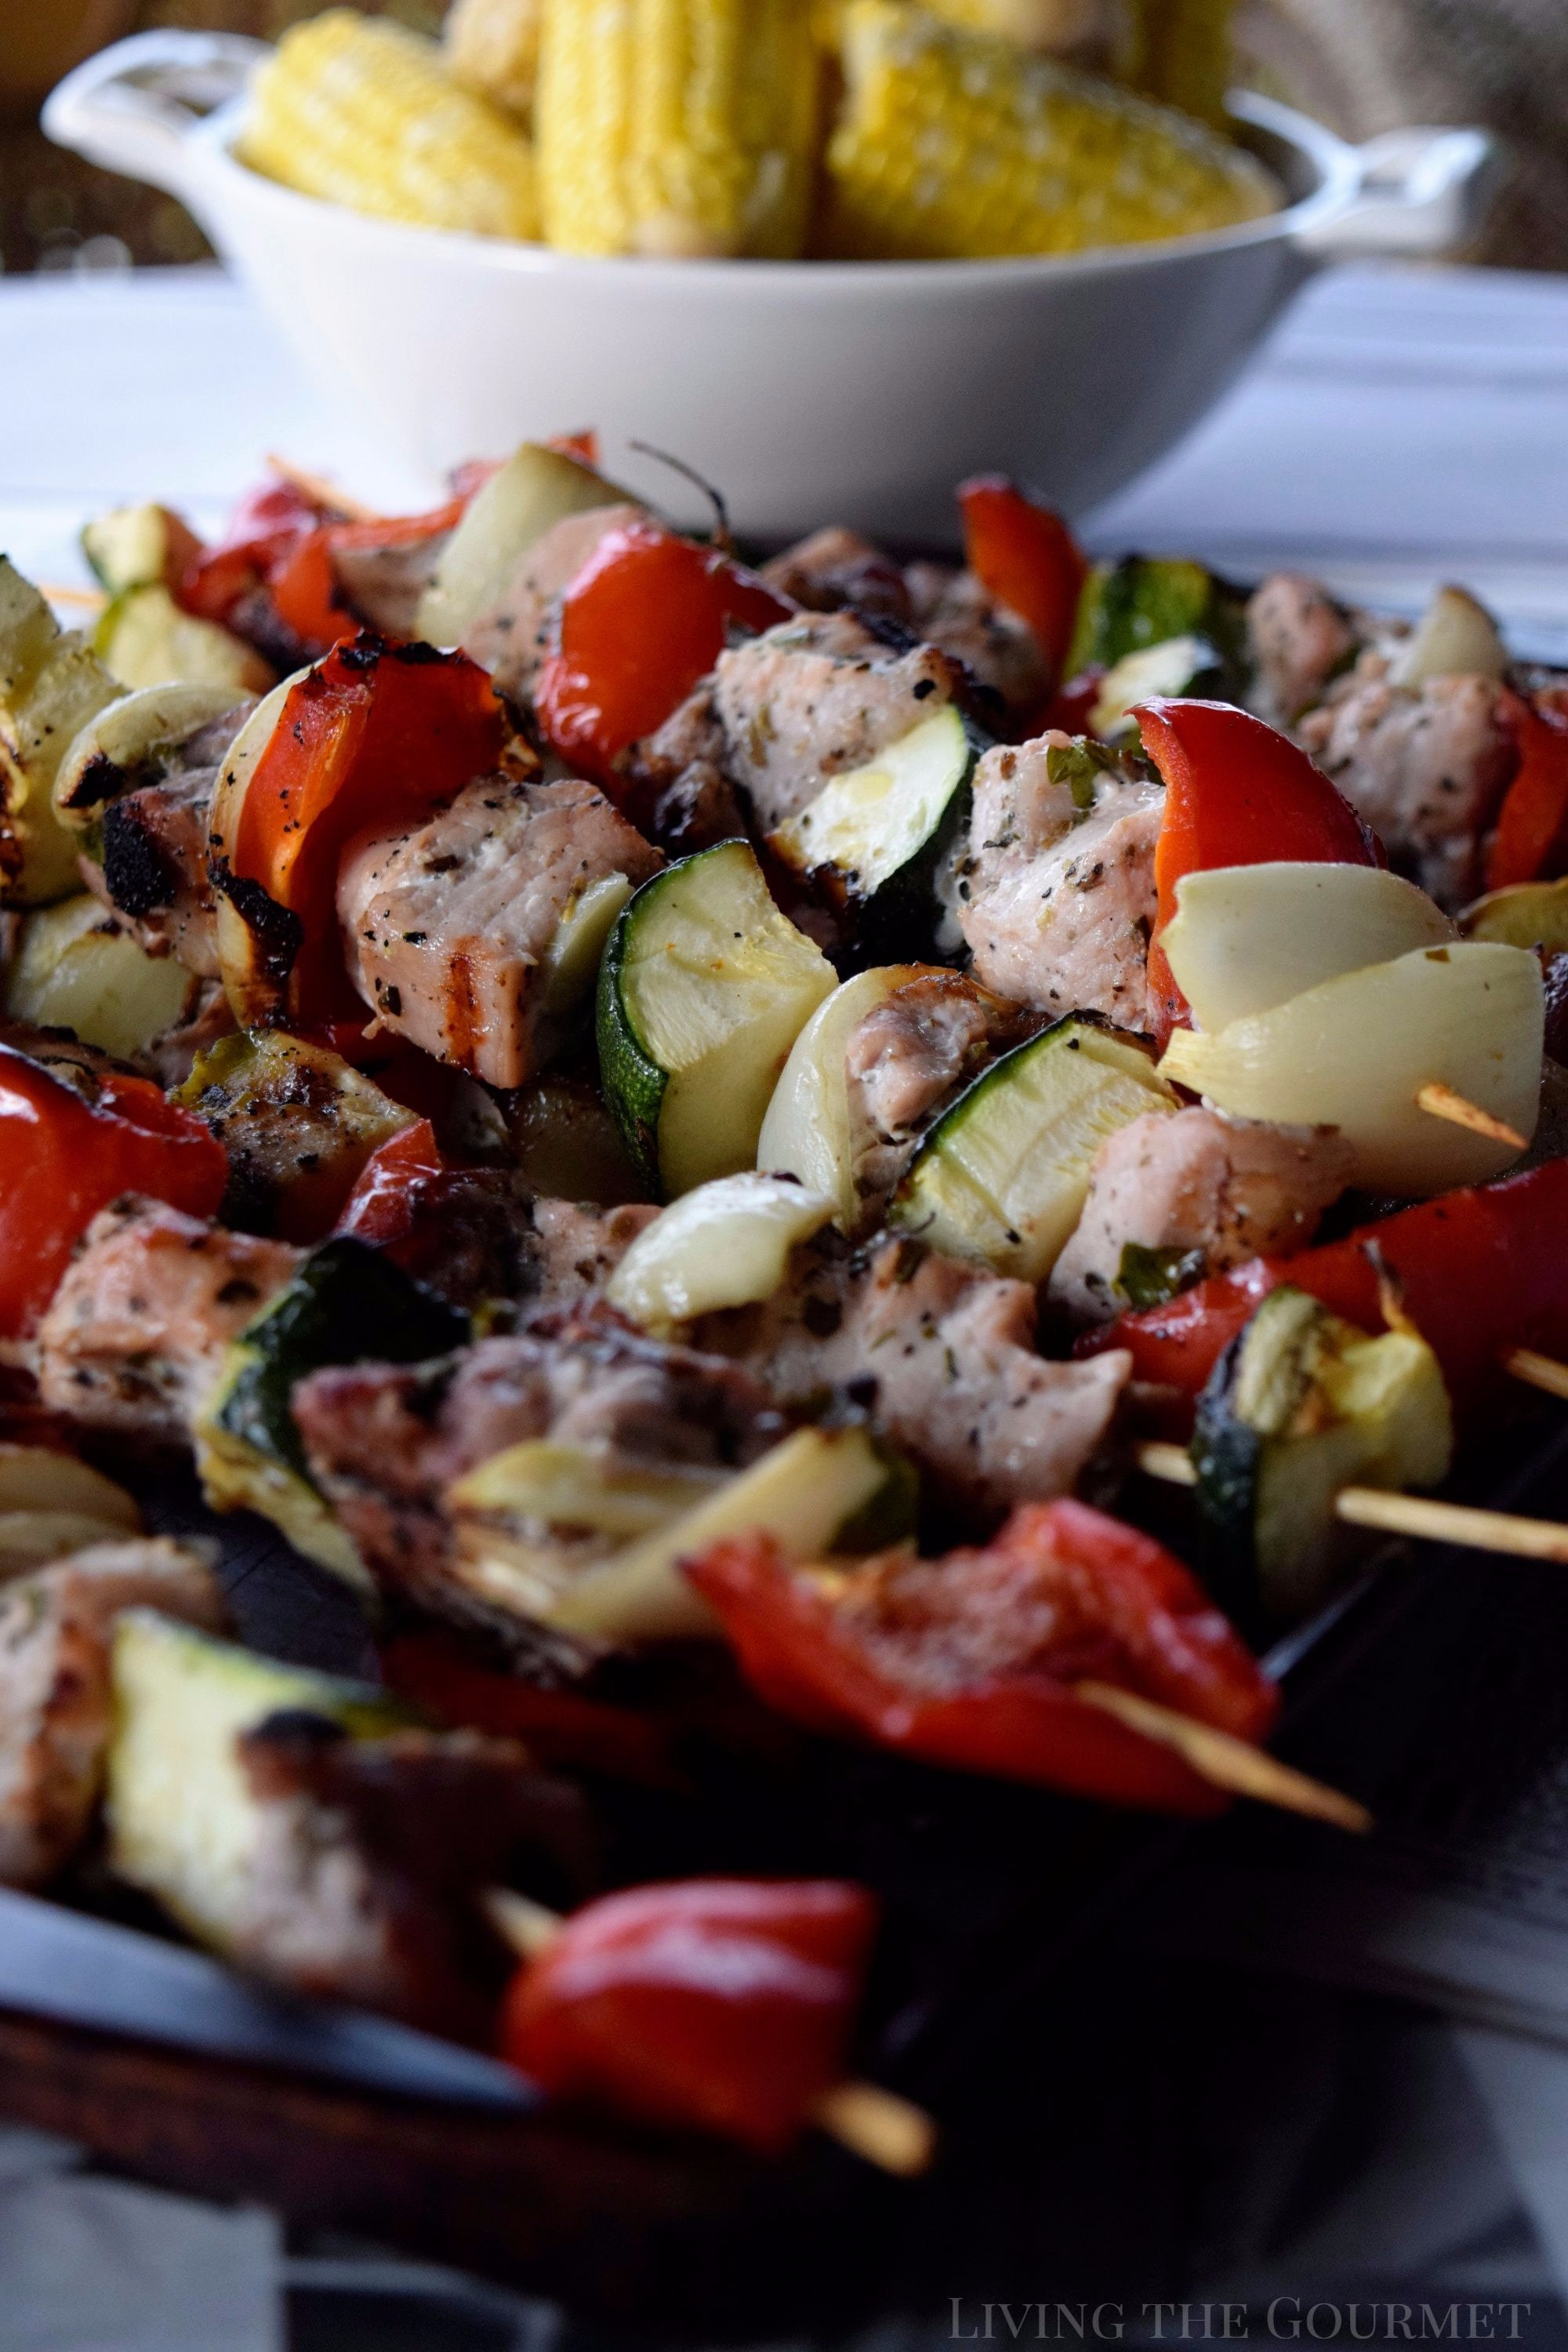 Living the Gourmet: Flame grilled Pork and Veggie Kabobs are a perfect way to enjoy the season's harvest!